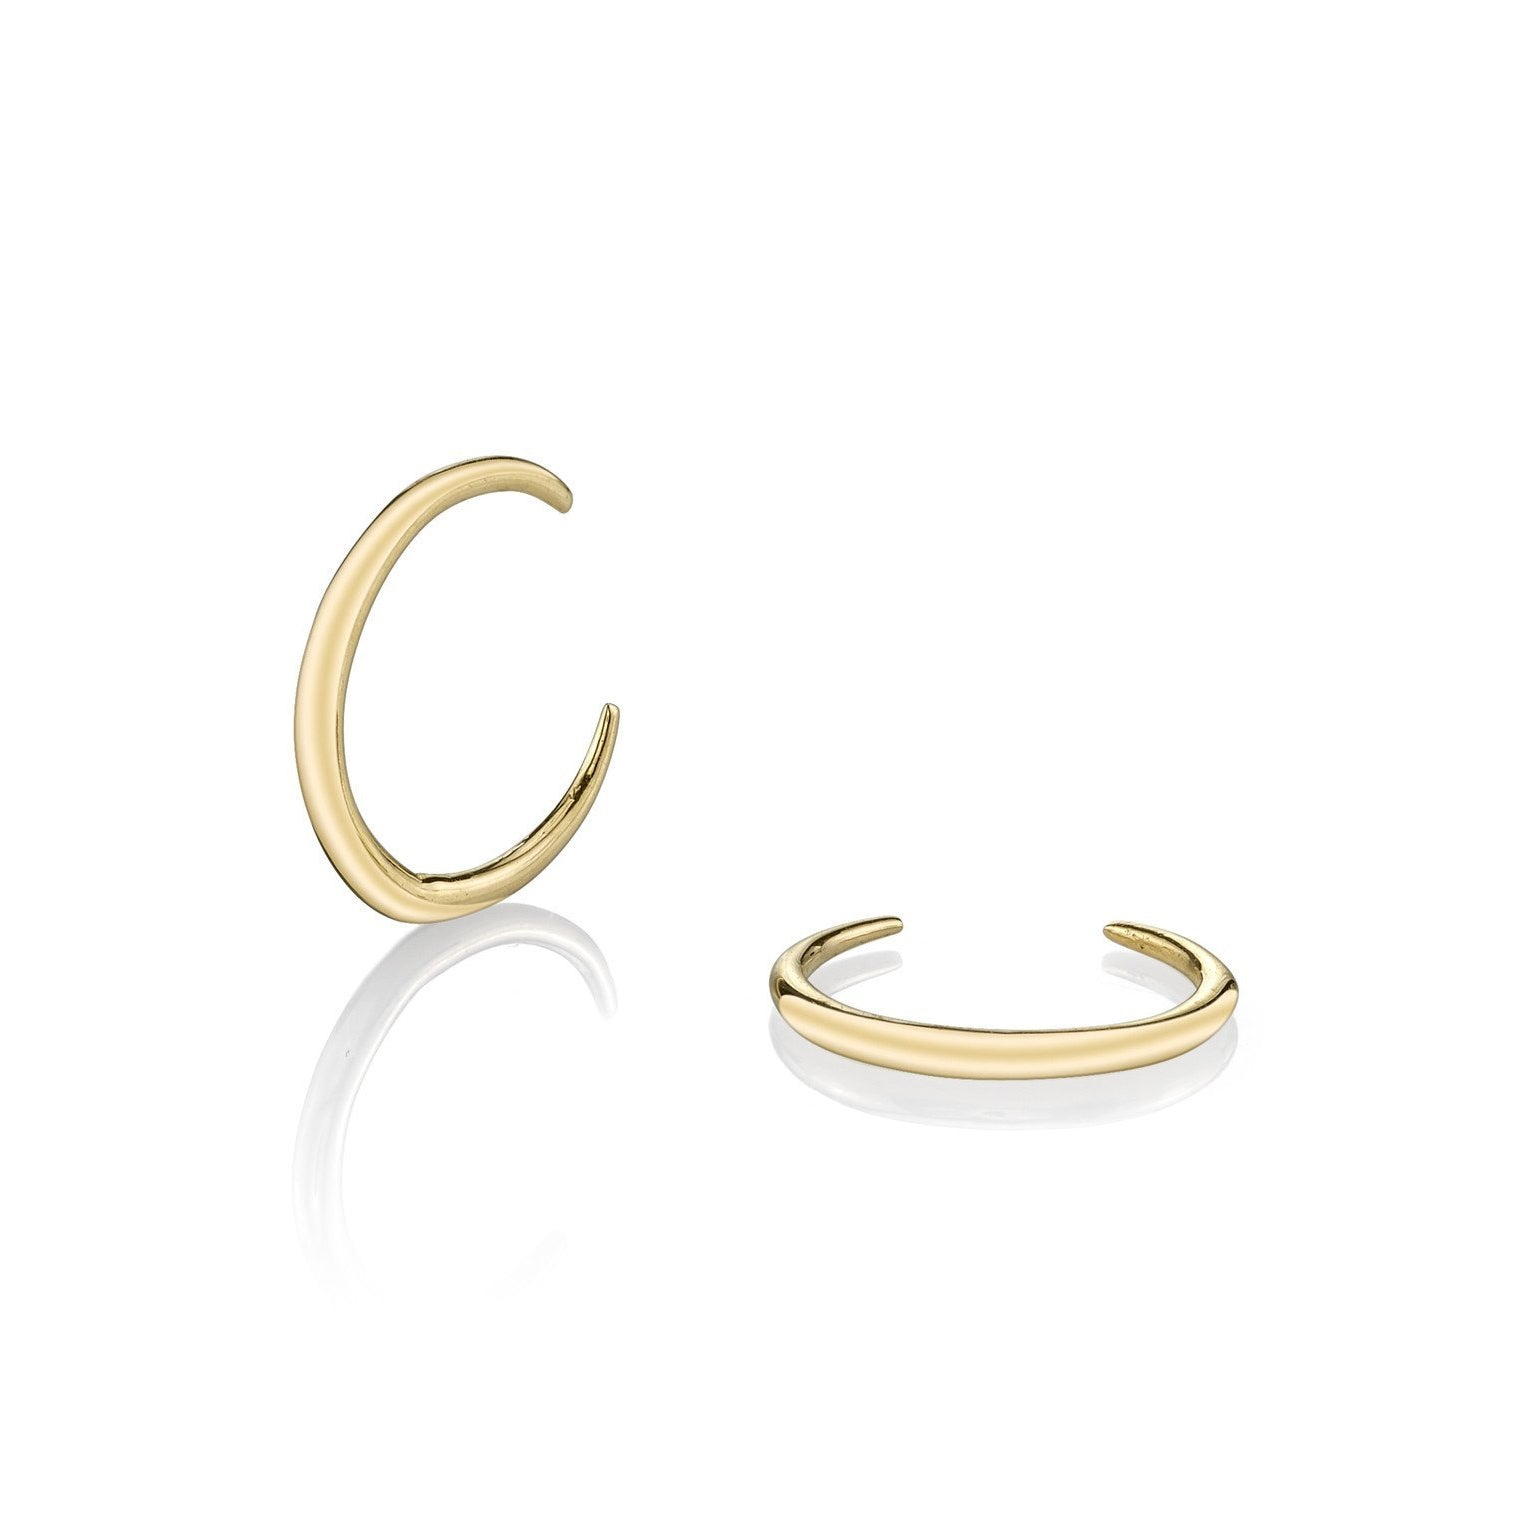 Gabriela Artigas Mini Rising Tusk Earrings (Pair)